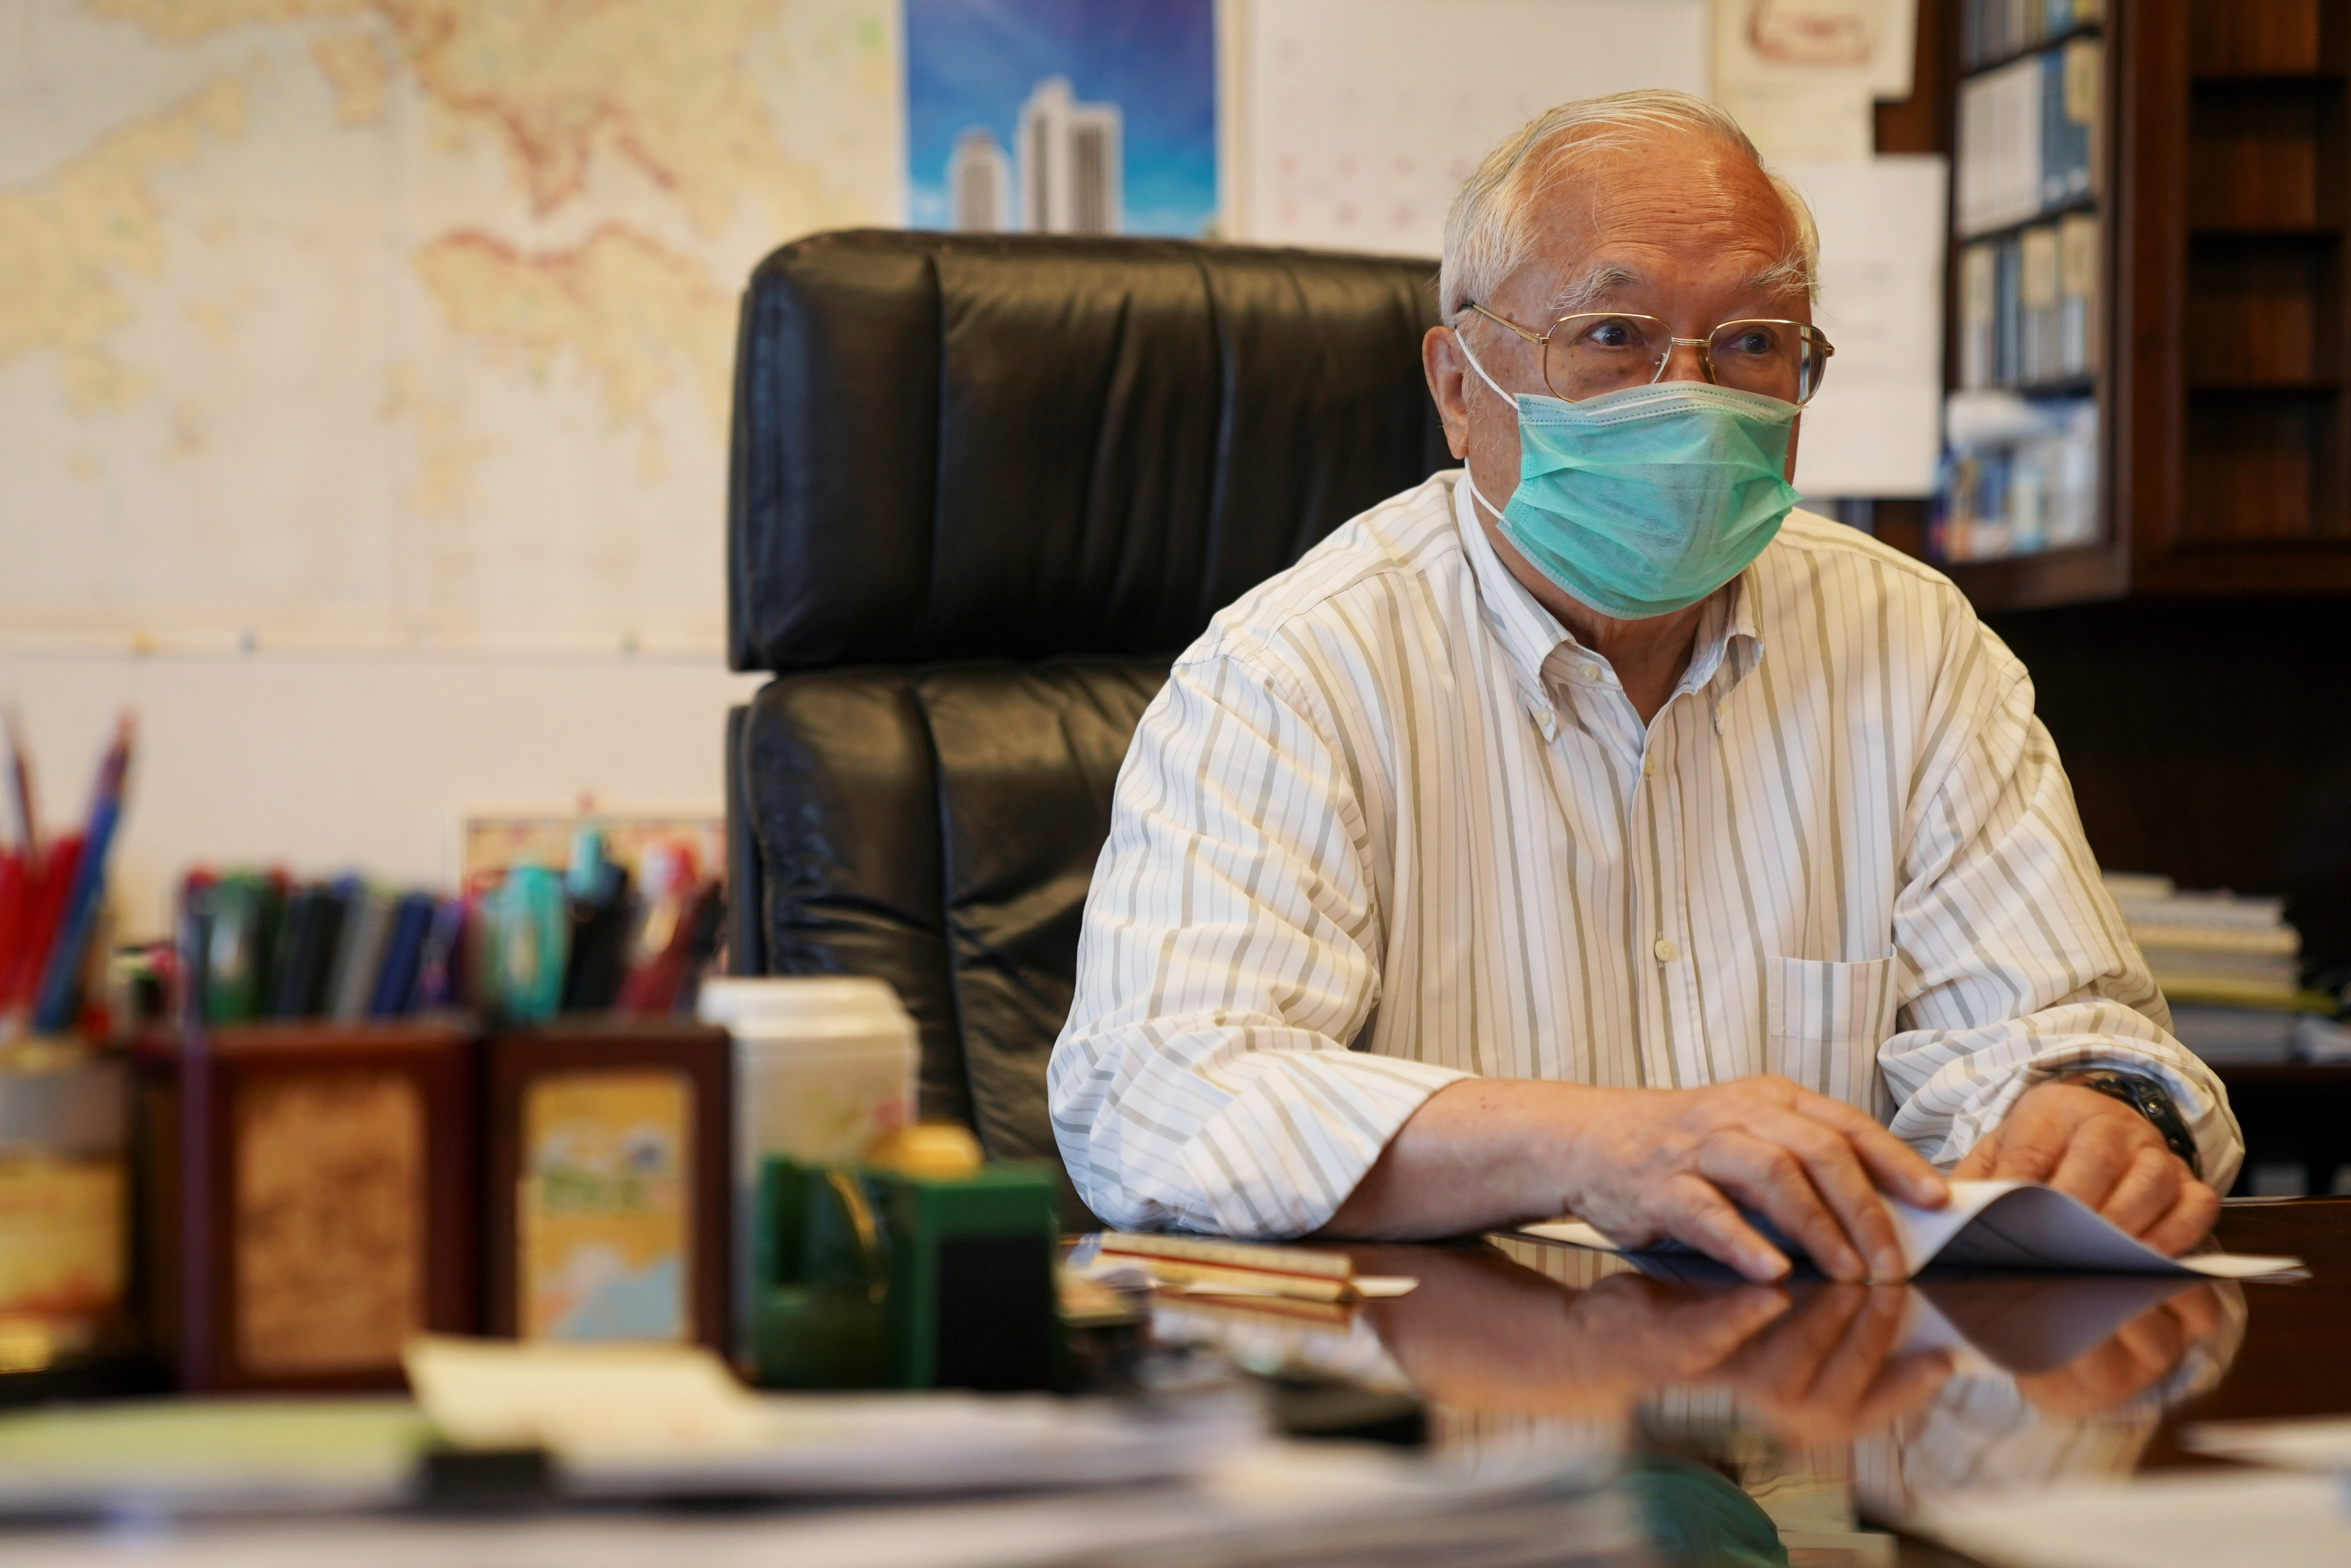 Hopewell Holdings Chairman Gordon Wu attends an interview at his office in Hong Kong, China May 17, 2021. Picture taken May 17, 2021. REUTERS/Lam Yik